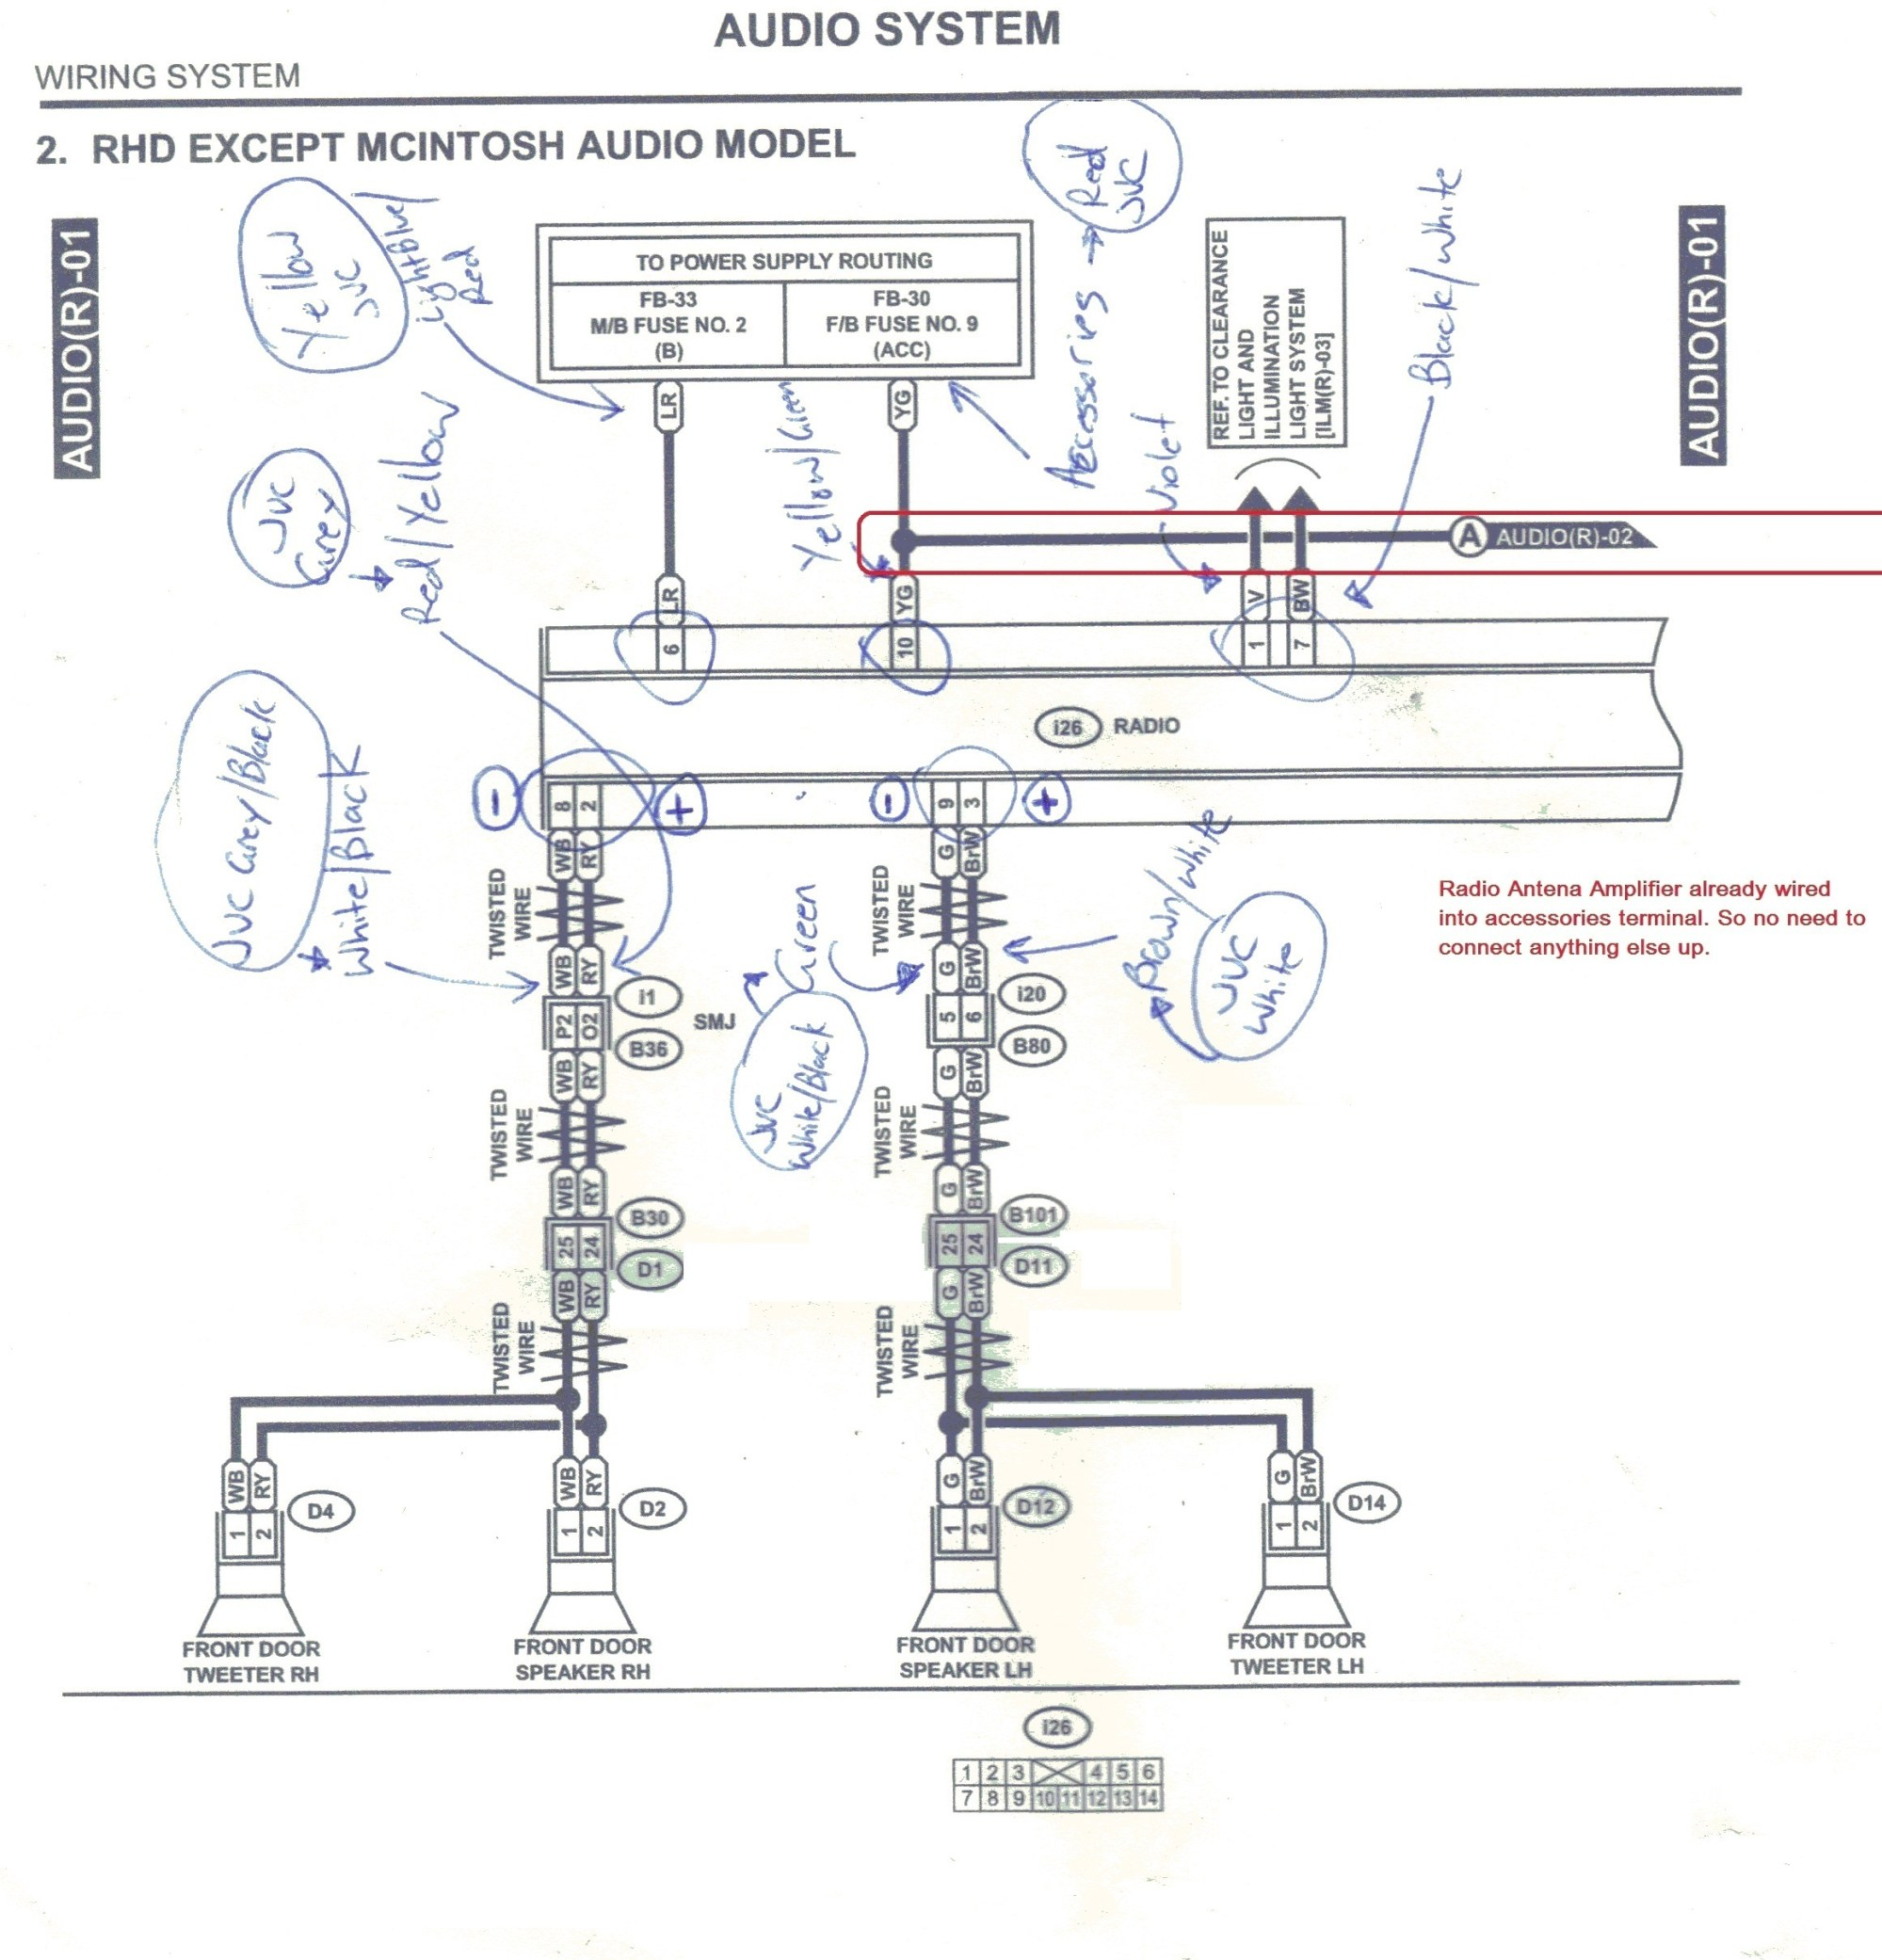 hight resolution of subaru brz radio wiring diagram wiring diagrams bib2013 subaru wiring diagram wiring diagram datasource subaru brz